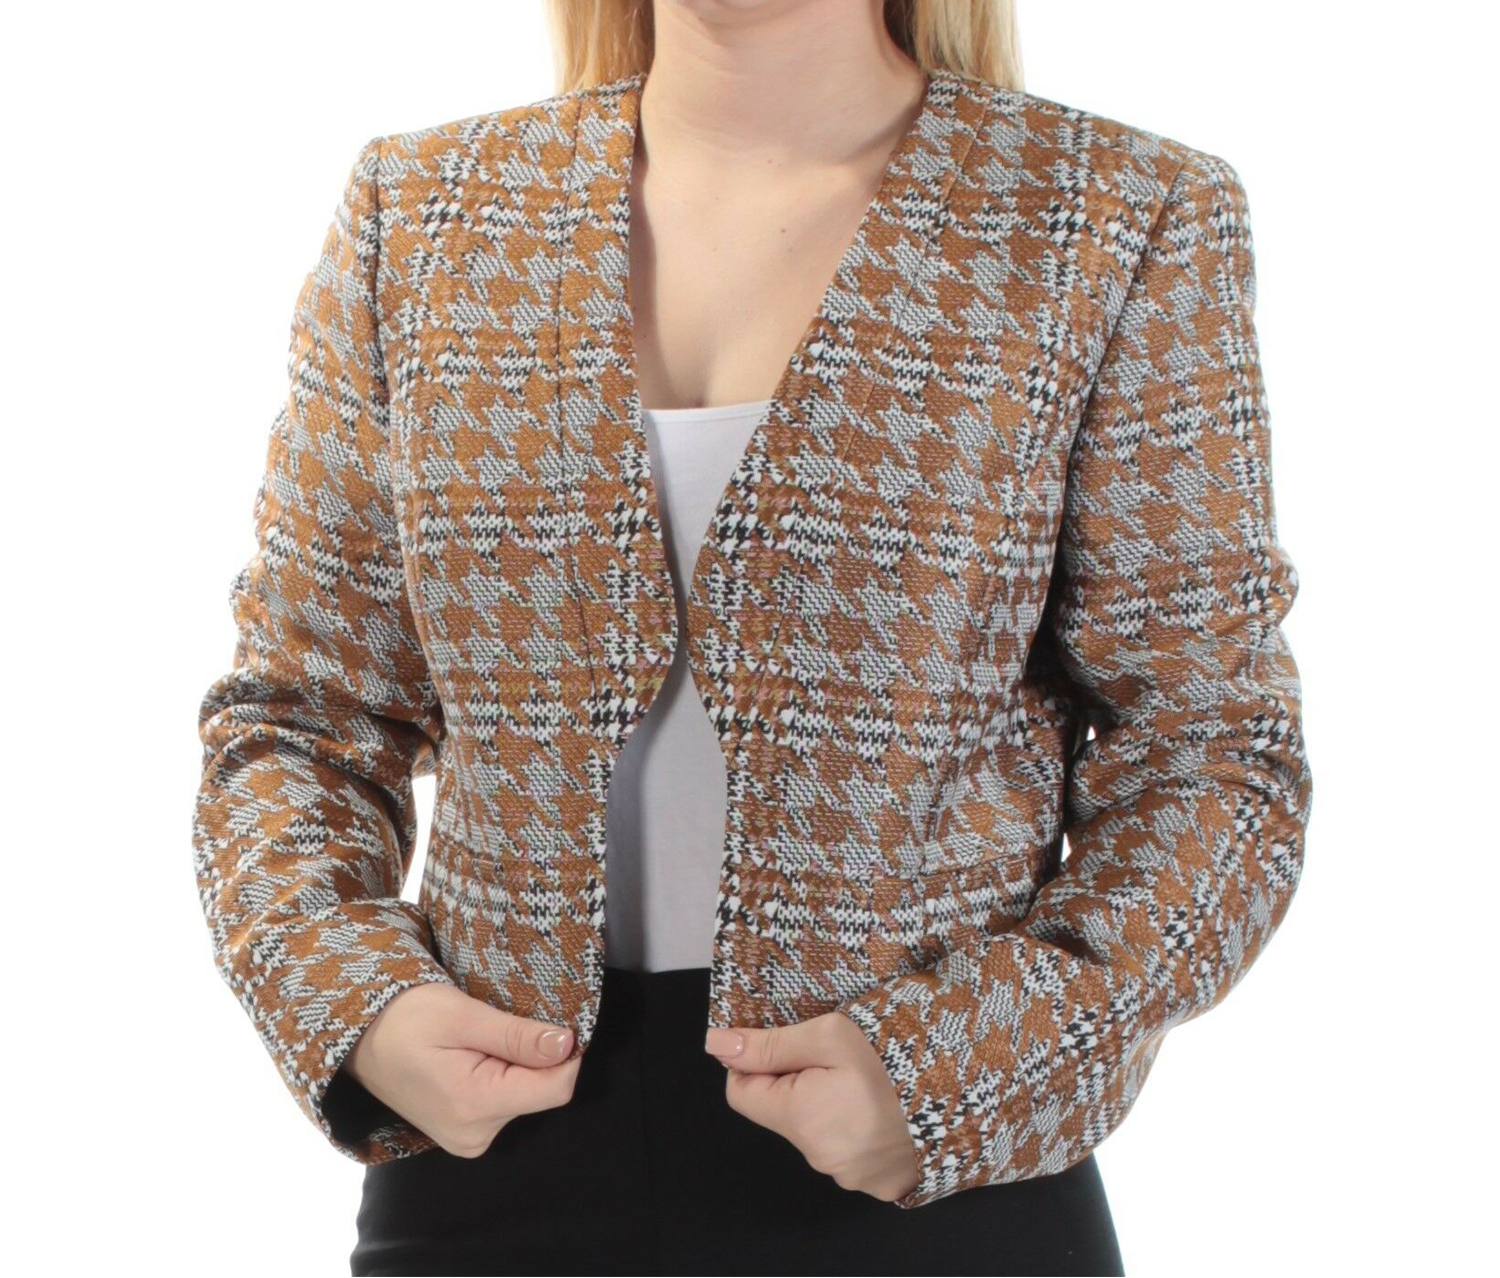 Nine West Metallic Houndstooth Jacket, Brandy Multi